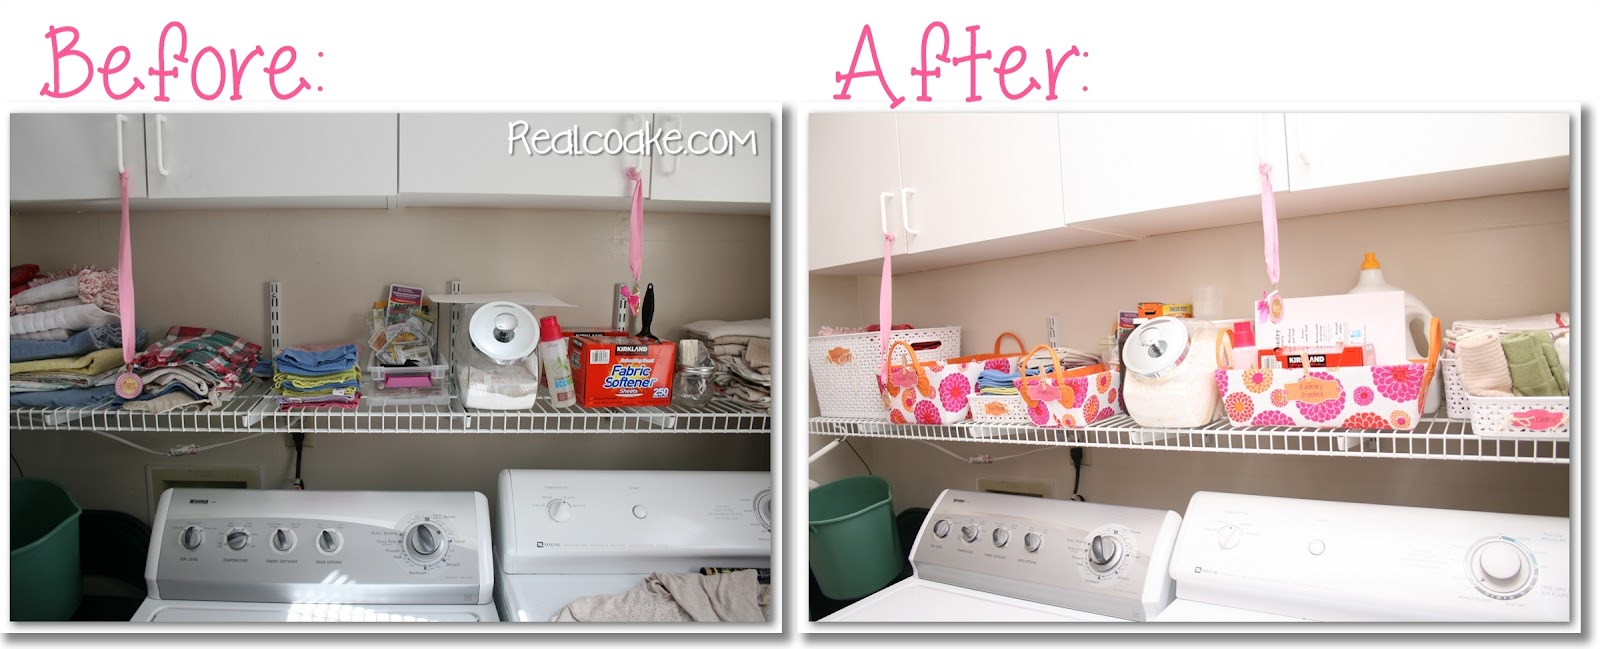 Laundry Room Cabinet Ideas storage and organization ideas for the laundry room